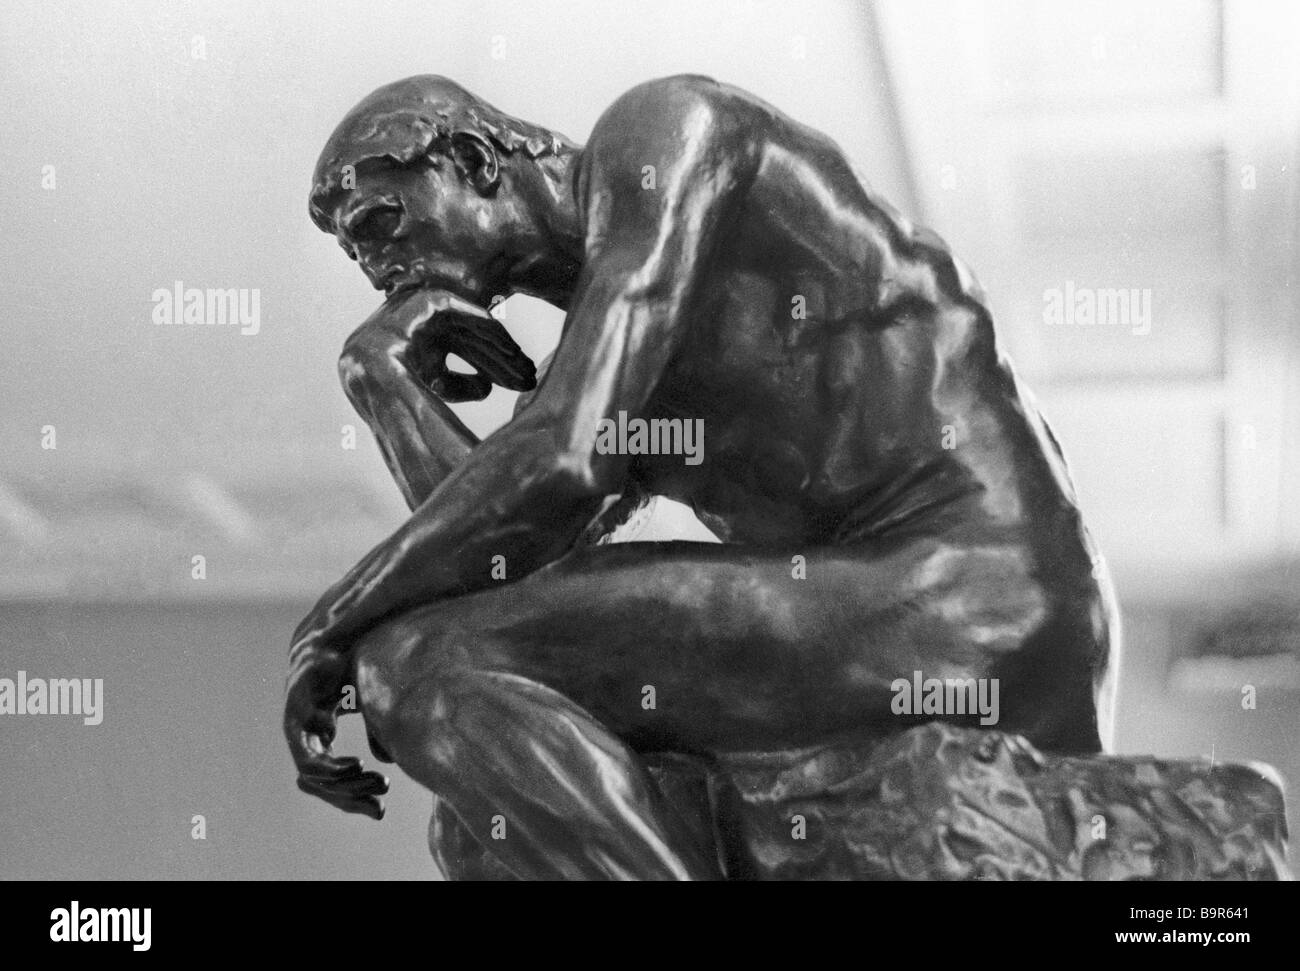 Auguste Rodin s sculpture The Thinker bronze 1880 from exhibition Rodin and His Time in the Pushkin Fine Arts Museum - Stock Image